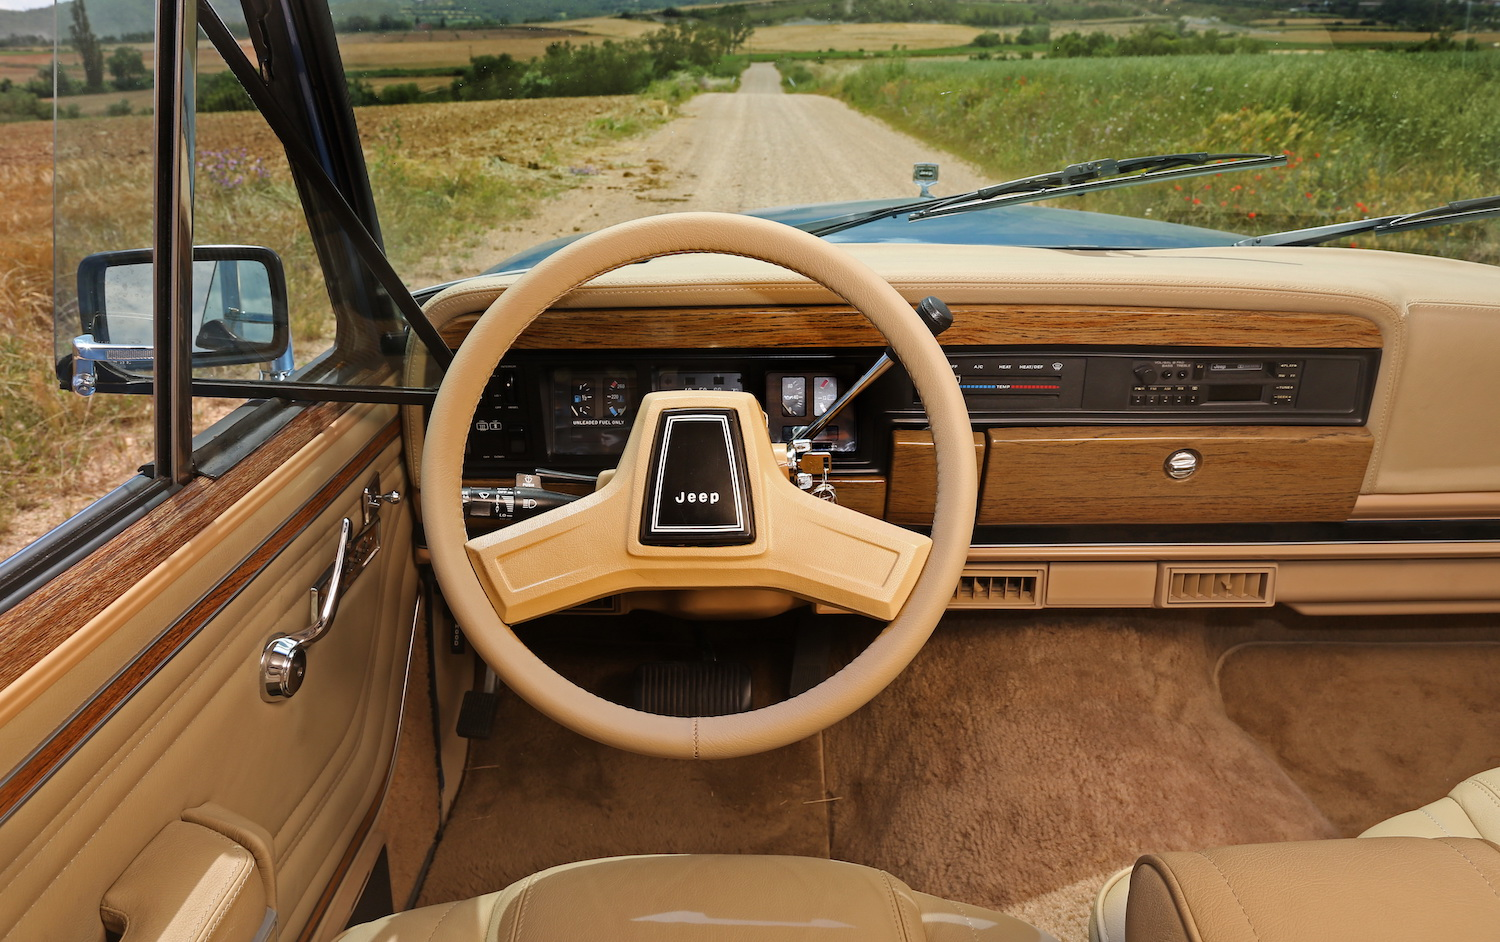 your definitive 1984 91 jeep grand wagoneer buyer s guide hagerty media your definitive 1984 91 jeep grand wagoneer buyer s guide hagerty media